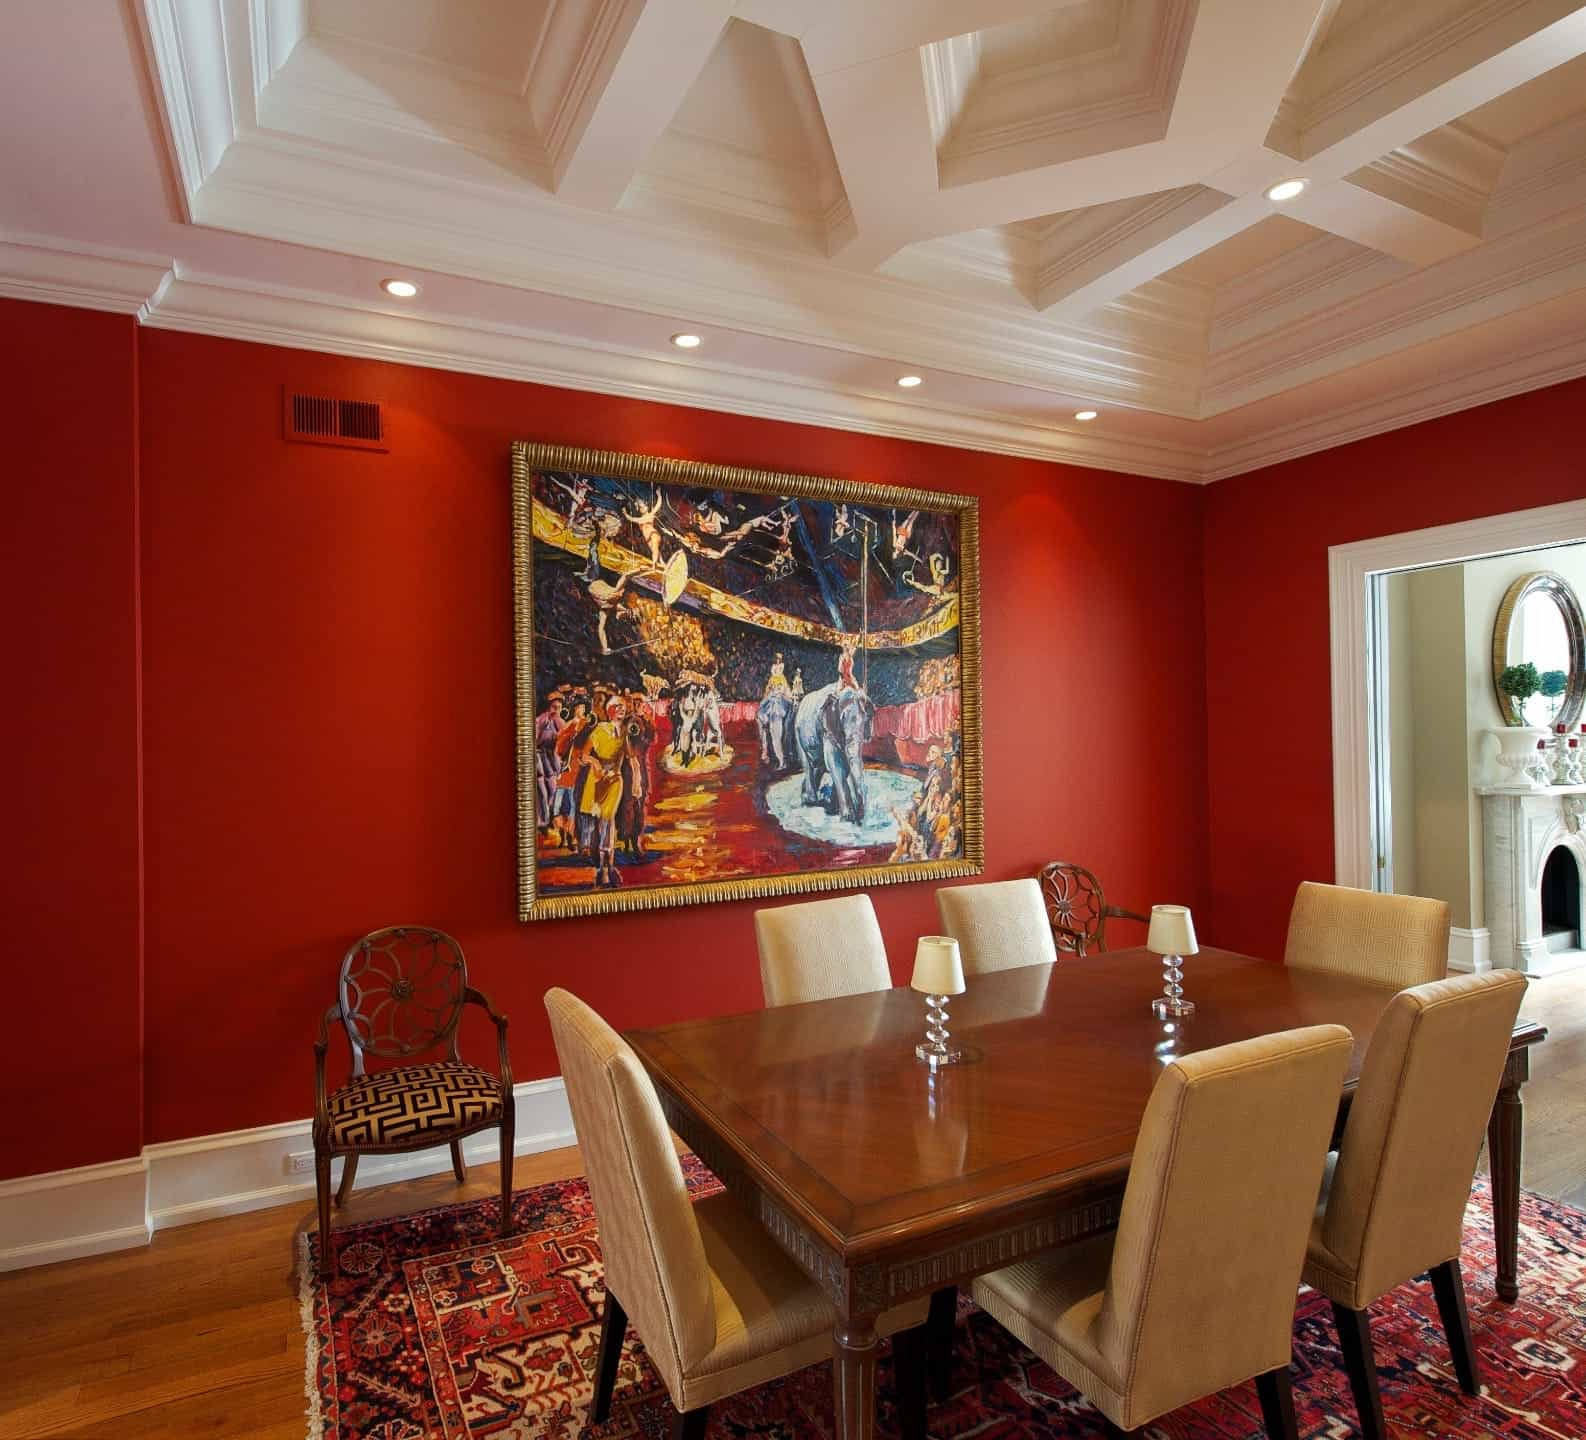 Romantic Dining Room In Bold Red Theme With Tray Ceiling And Colorful Artwork (Photo 7 of 21)